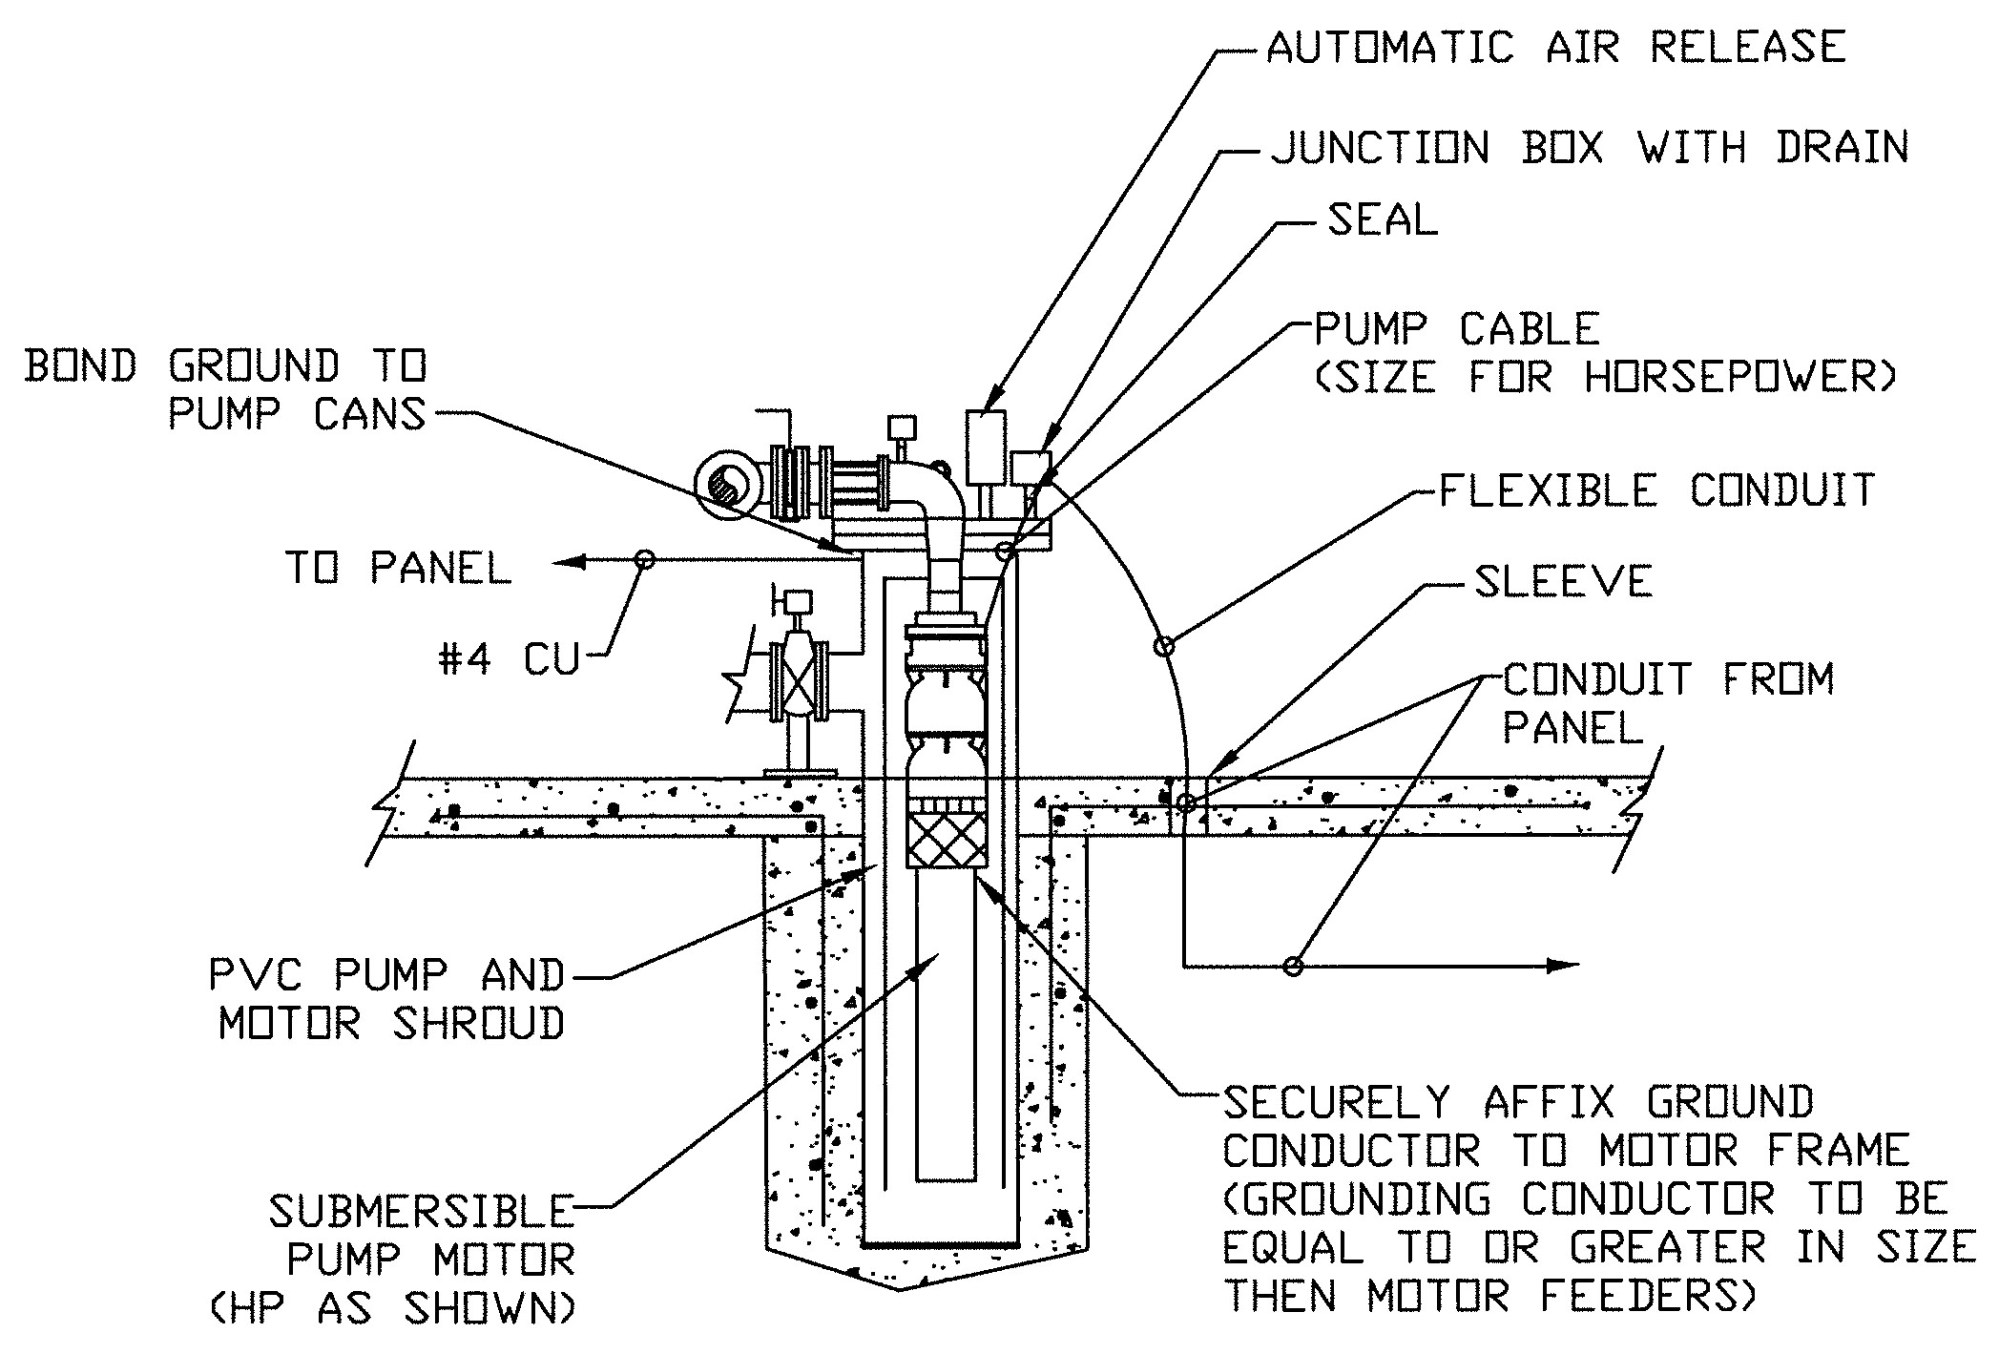 hight resolution of figure 4 submersible pump can with motor shroud grounding and proper cable sealing